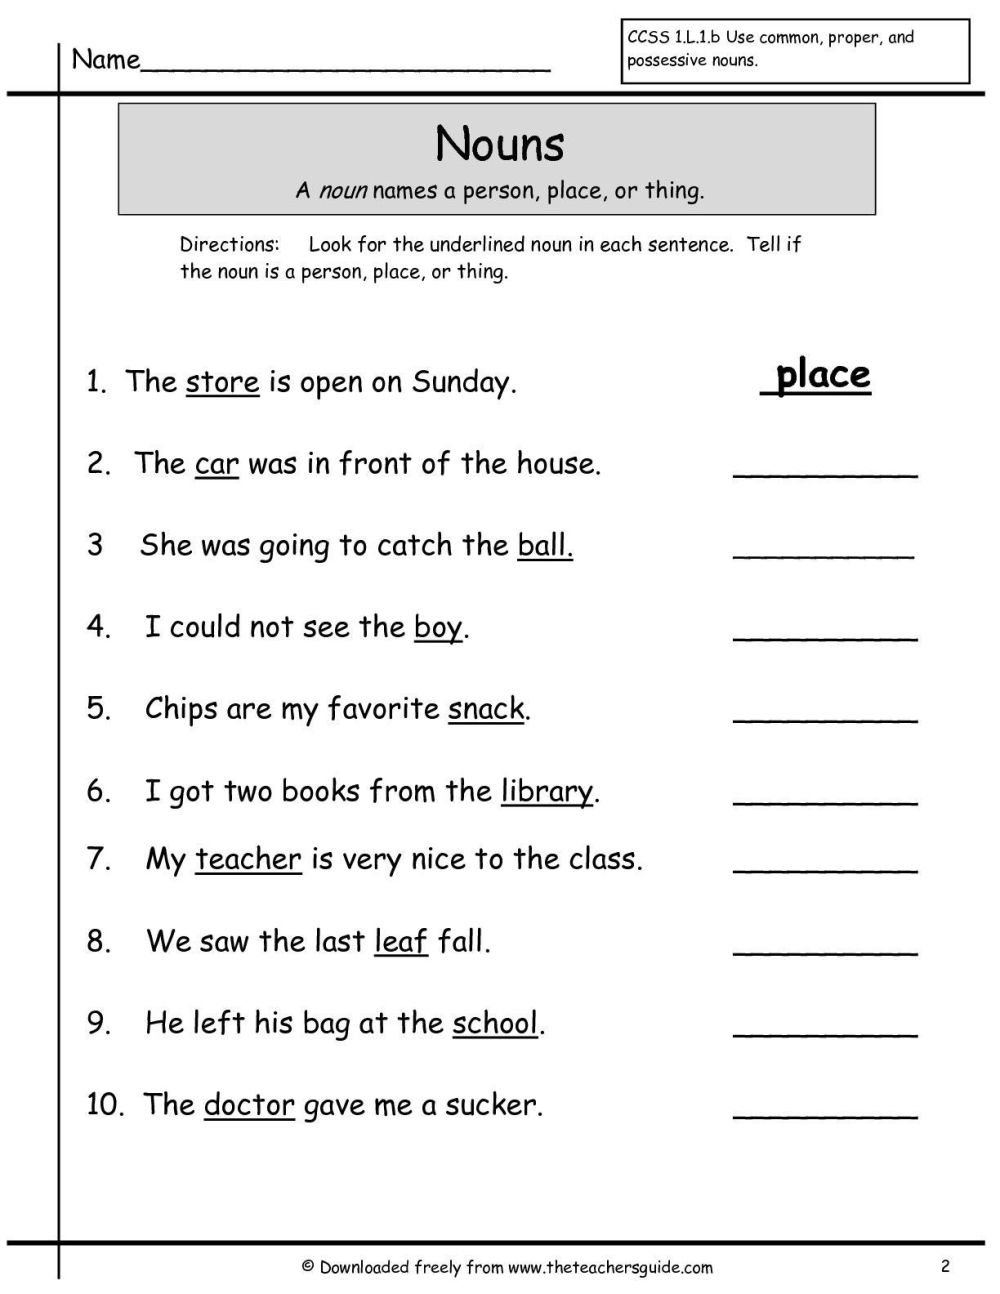 medium resolution of Conclusion Worksheet   Printable Worksheets and Activities for Teachers